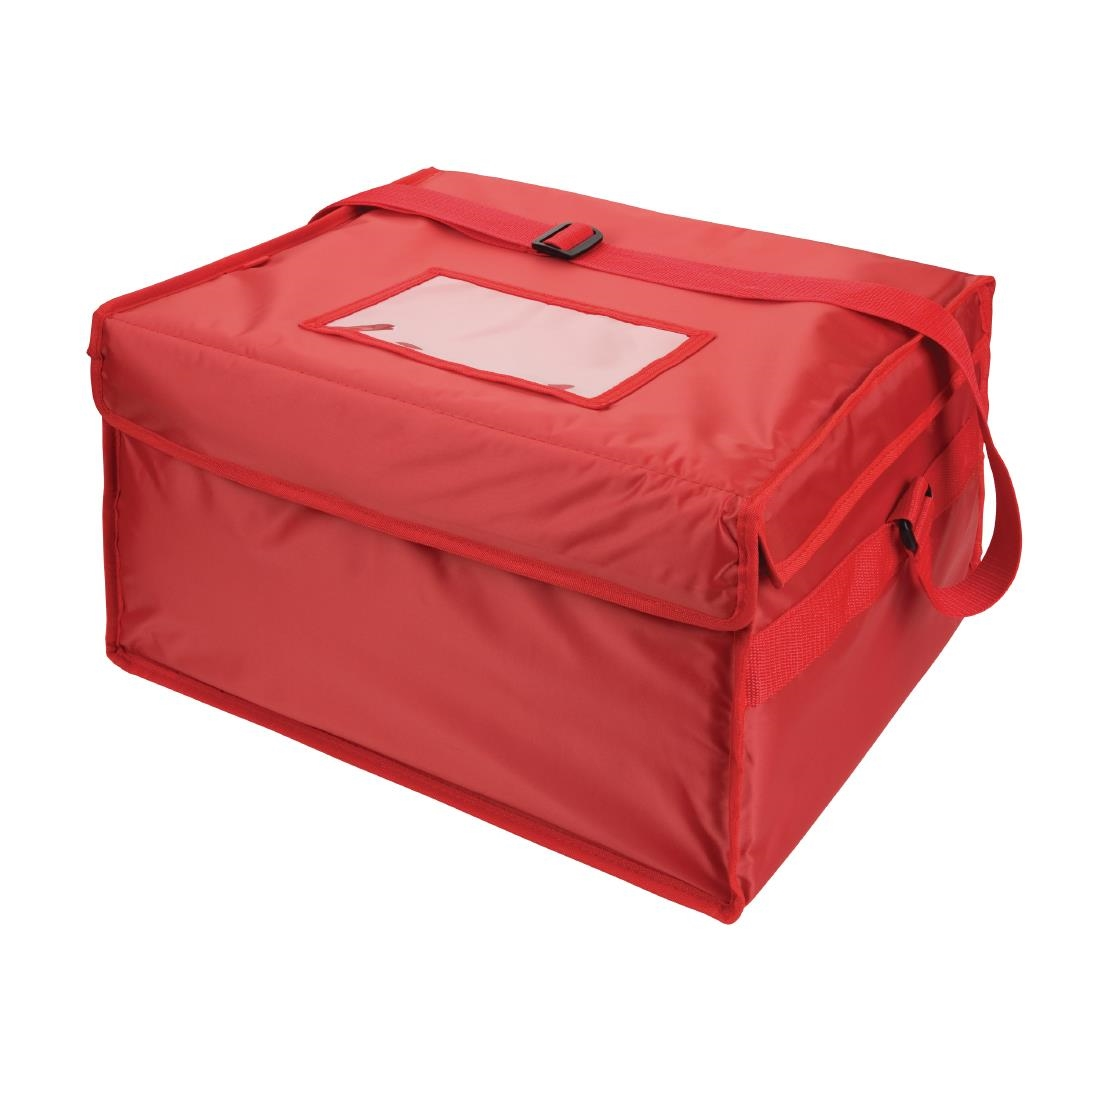 Vogue Nylon Insulated Food Delivery Bag